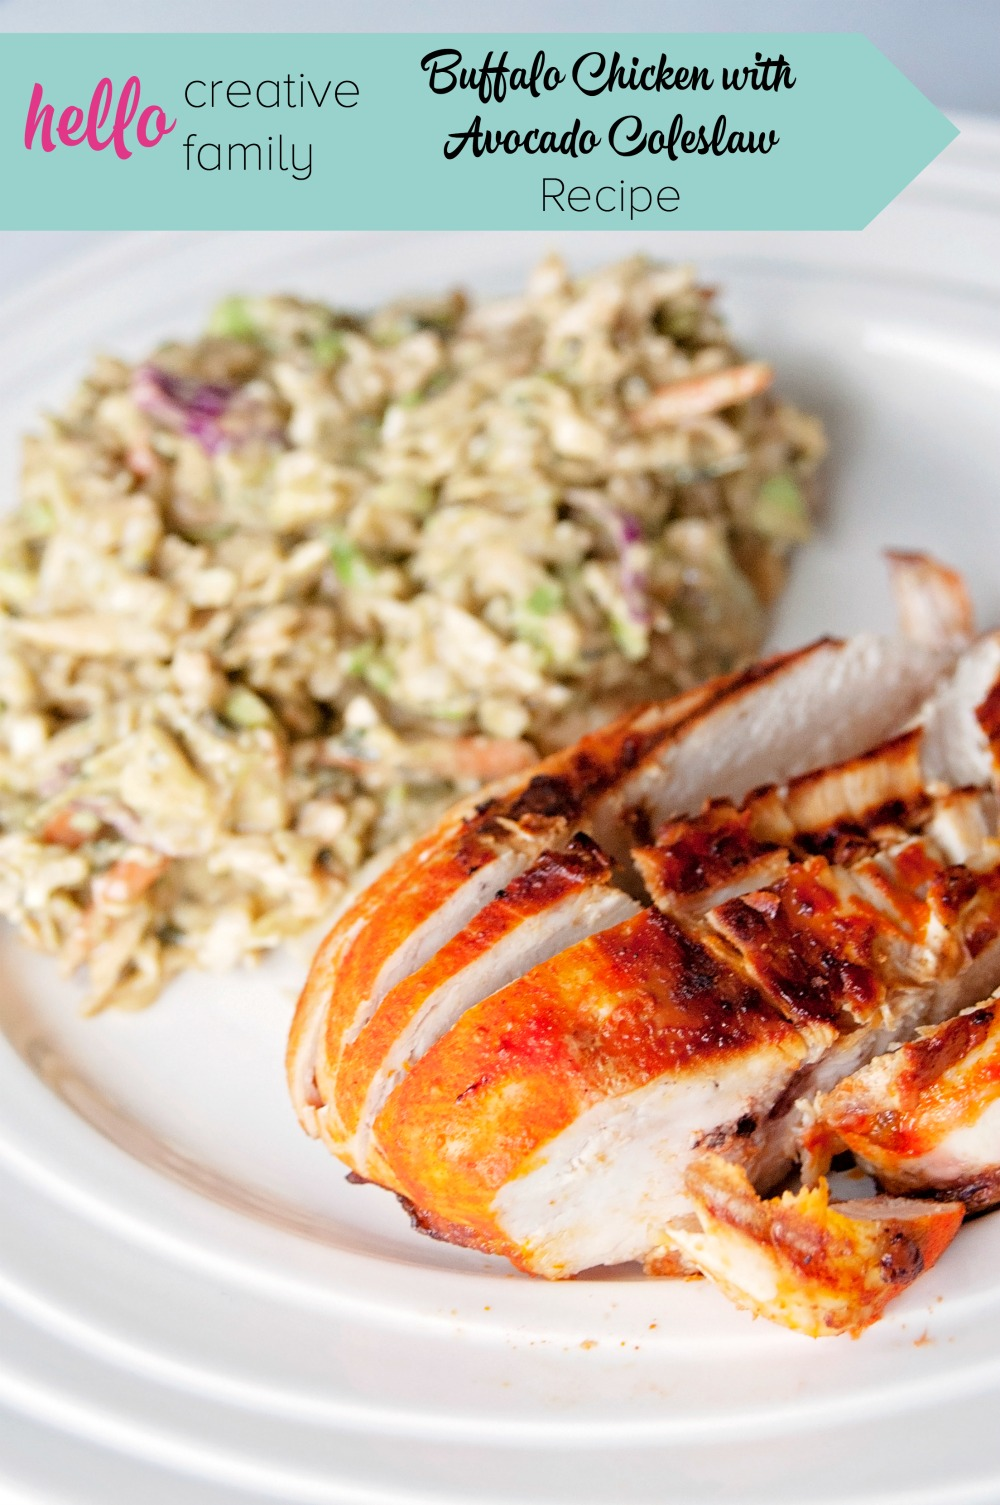 This Buffalo Chicken With Avocado Coleslaw Recipe is perfect for summertime BBQ's